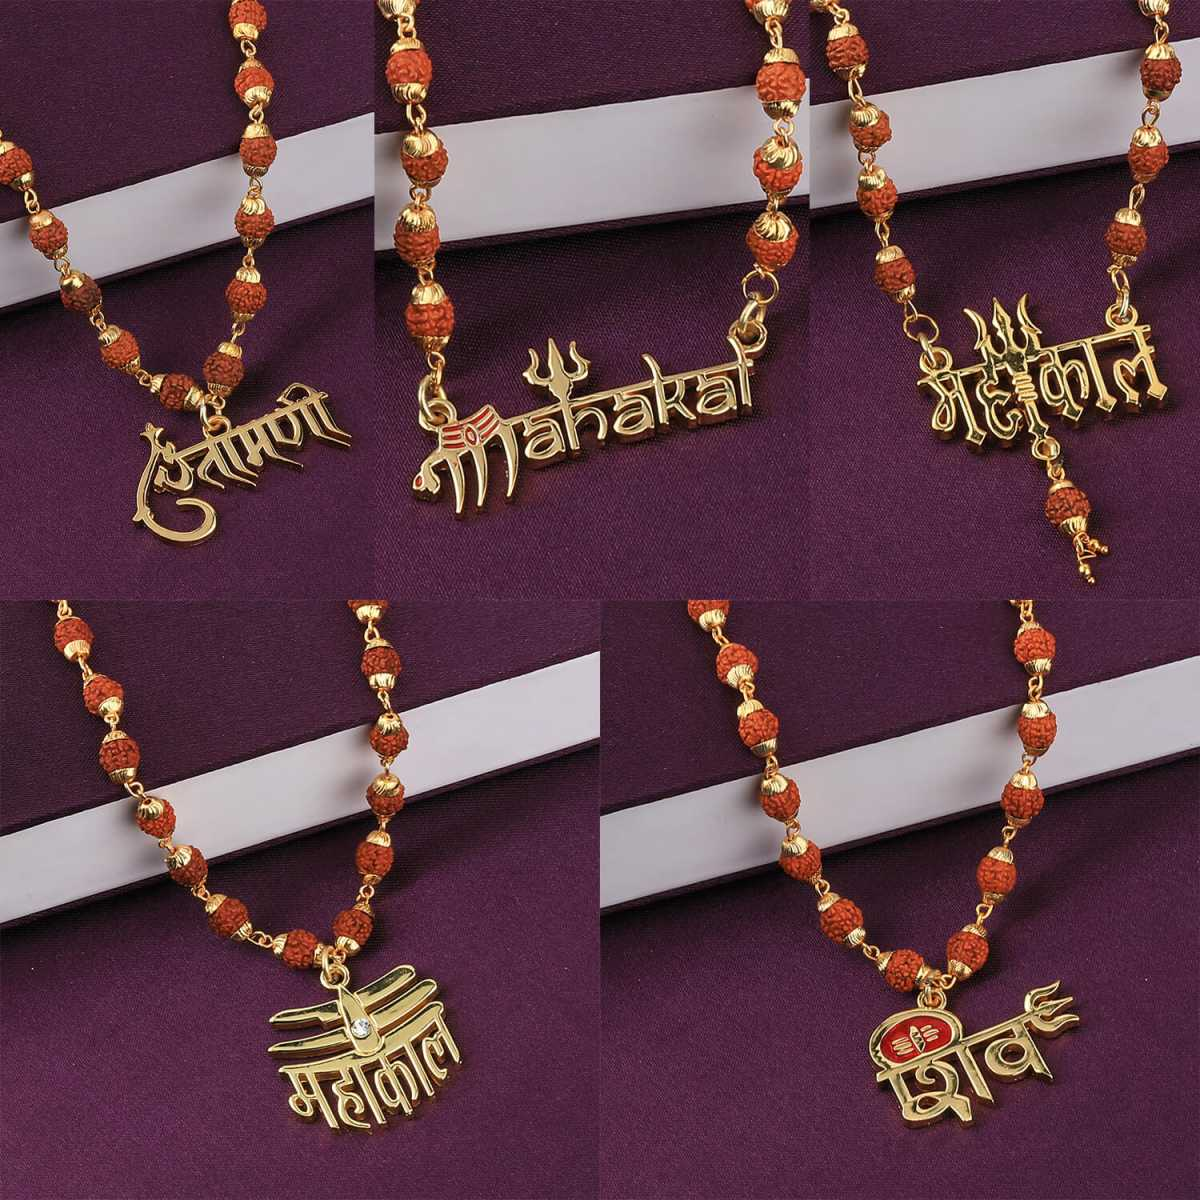 SILVER SHINE Gold Plated Attractive Combo Rudraksh Mala Pendant for Men and Women Set-5